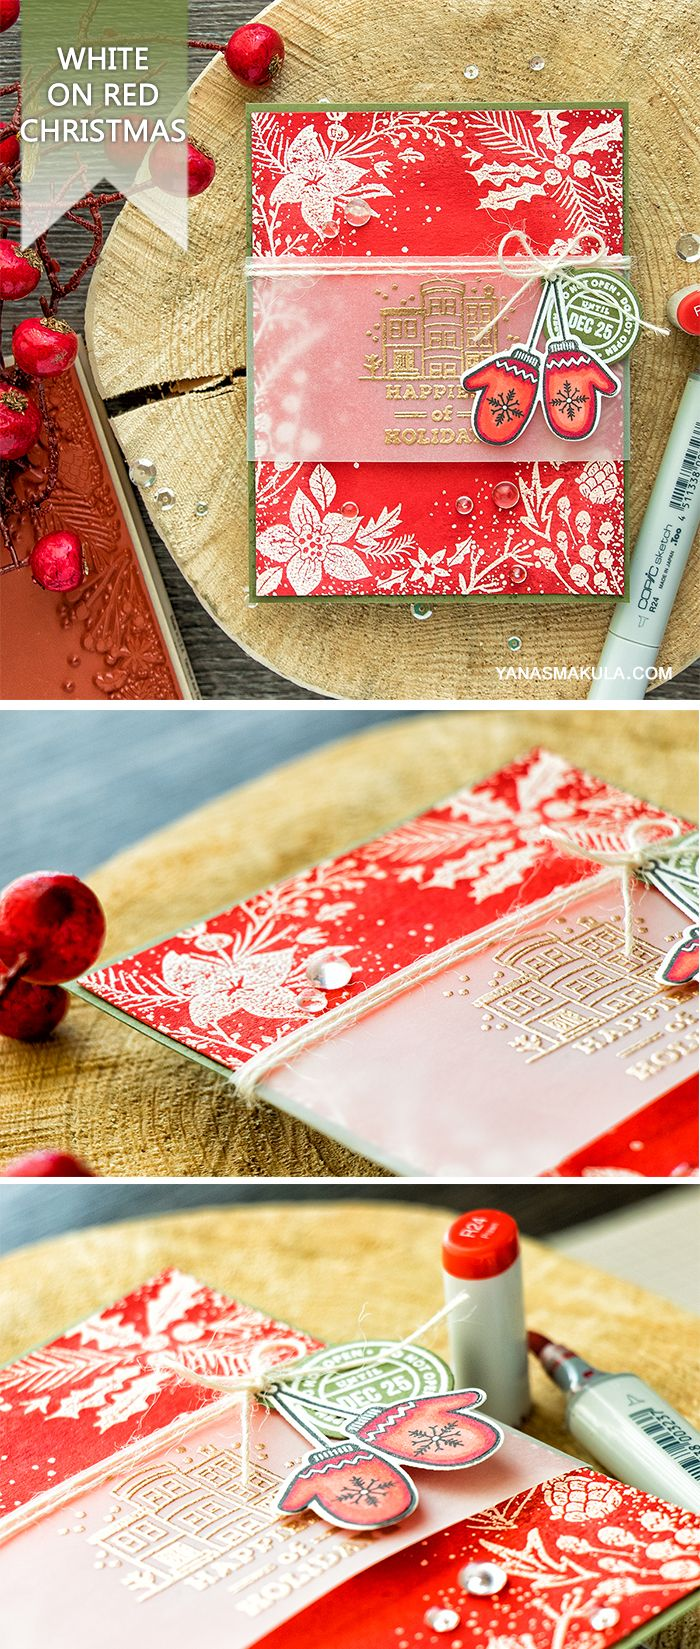 Create beautiful Holiday card with Hero Arts Holiday Floral Background stamp and other sets! For more details, visit http://www.yanasmakula.com/?p=55815